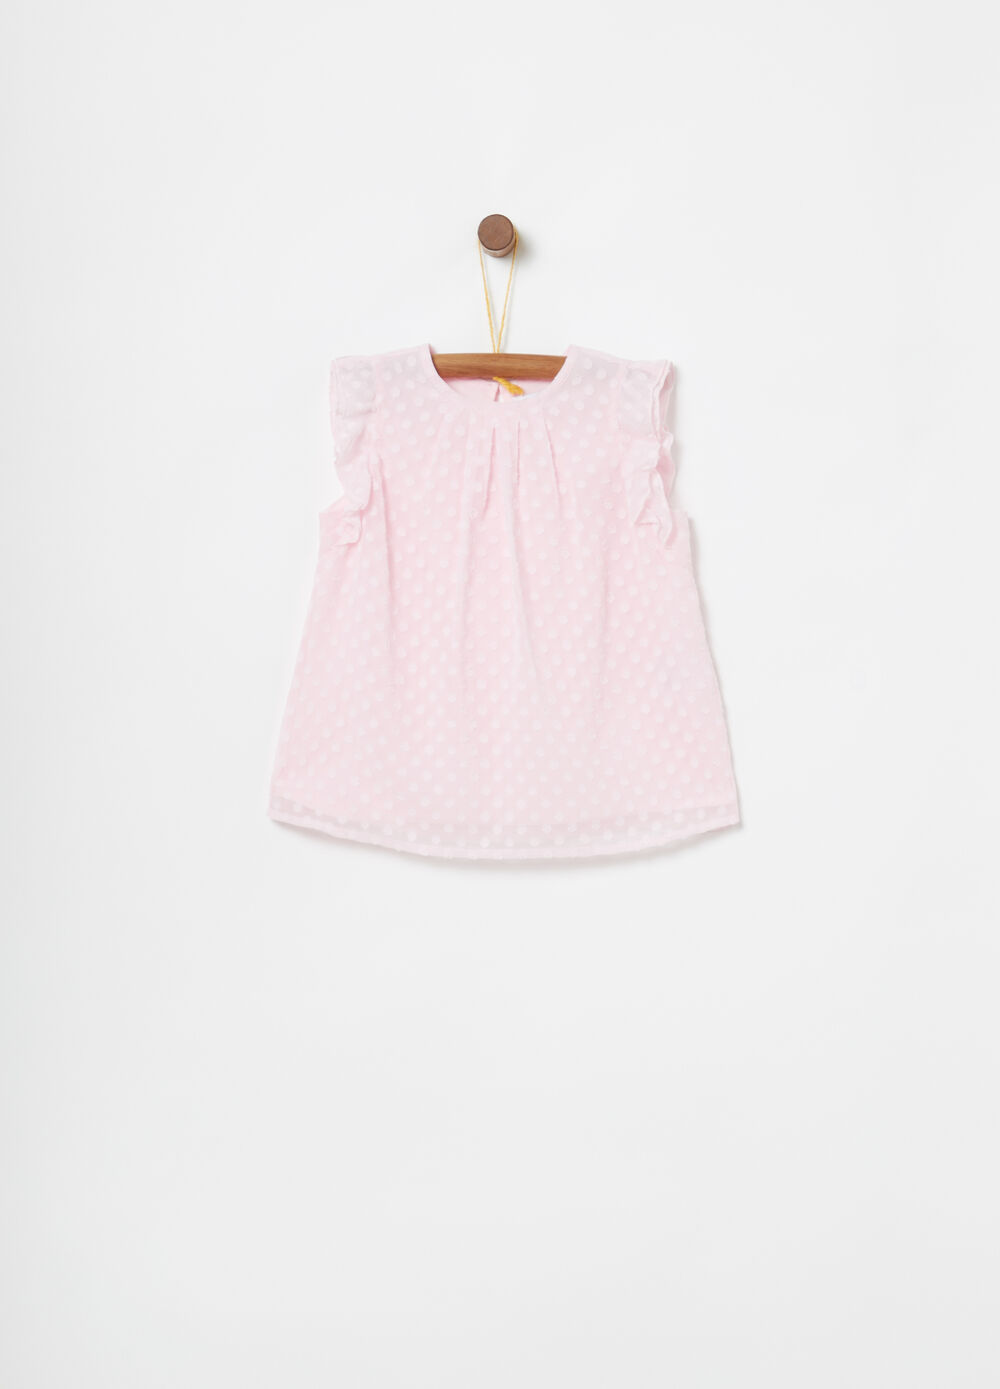 Shirt with frills and polka dots